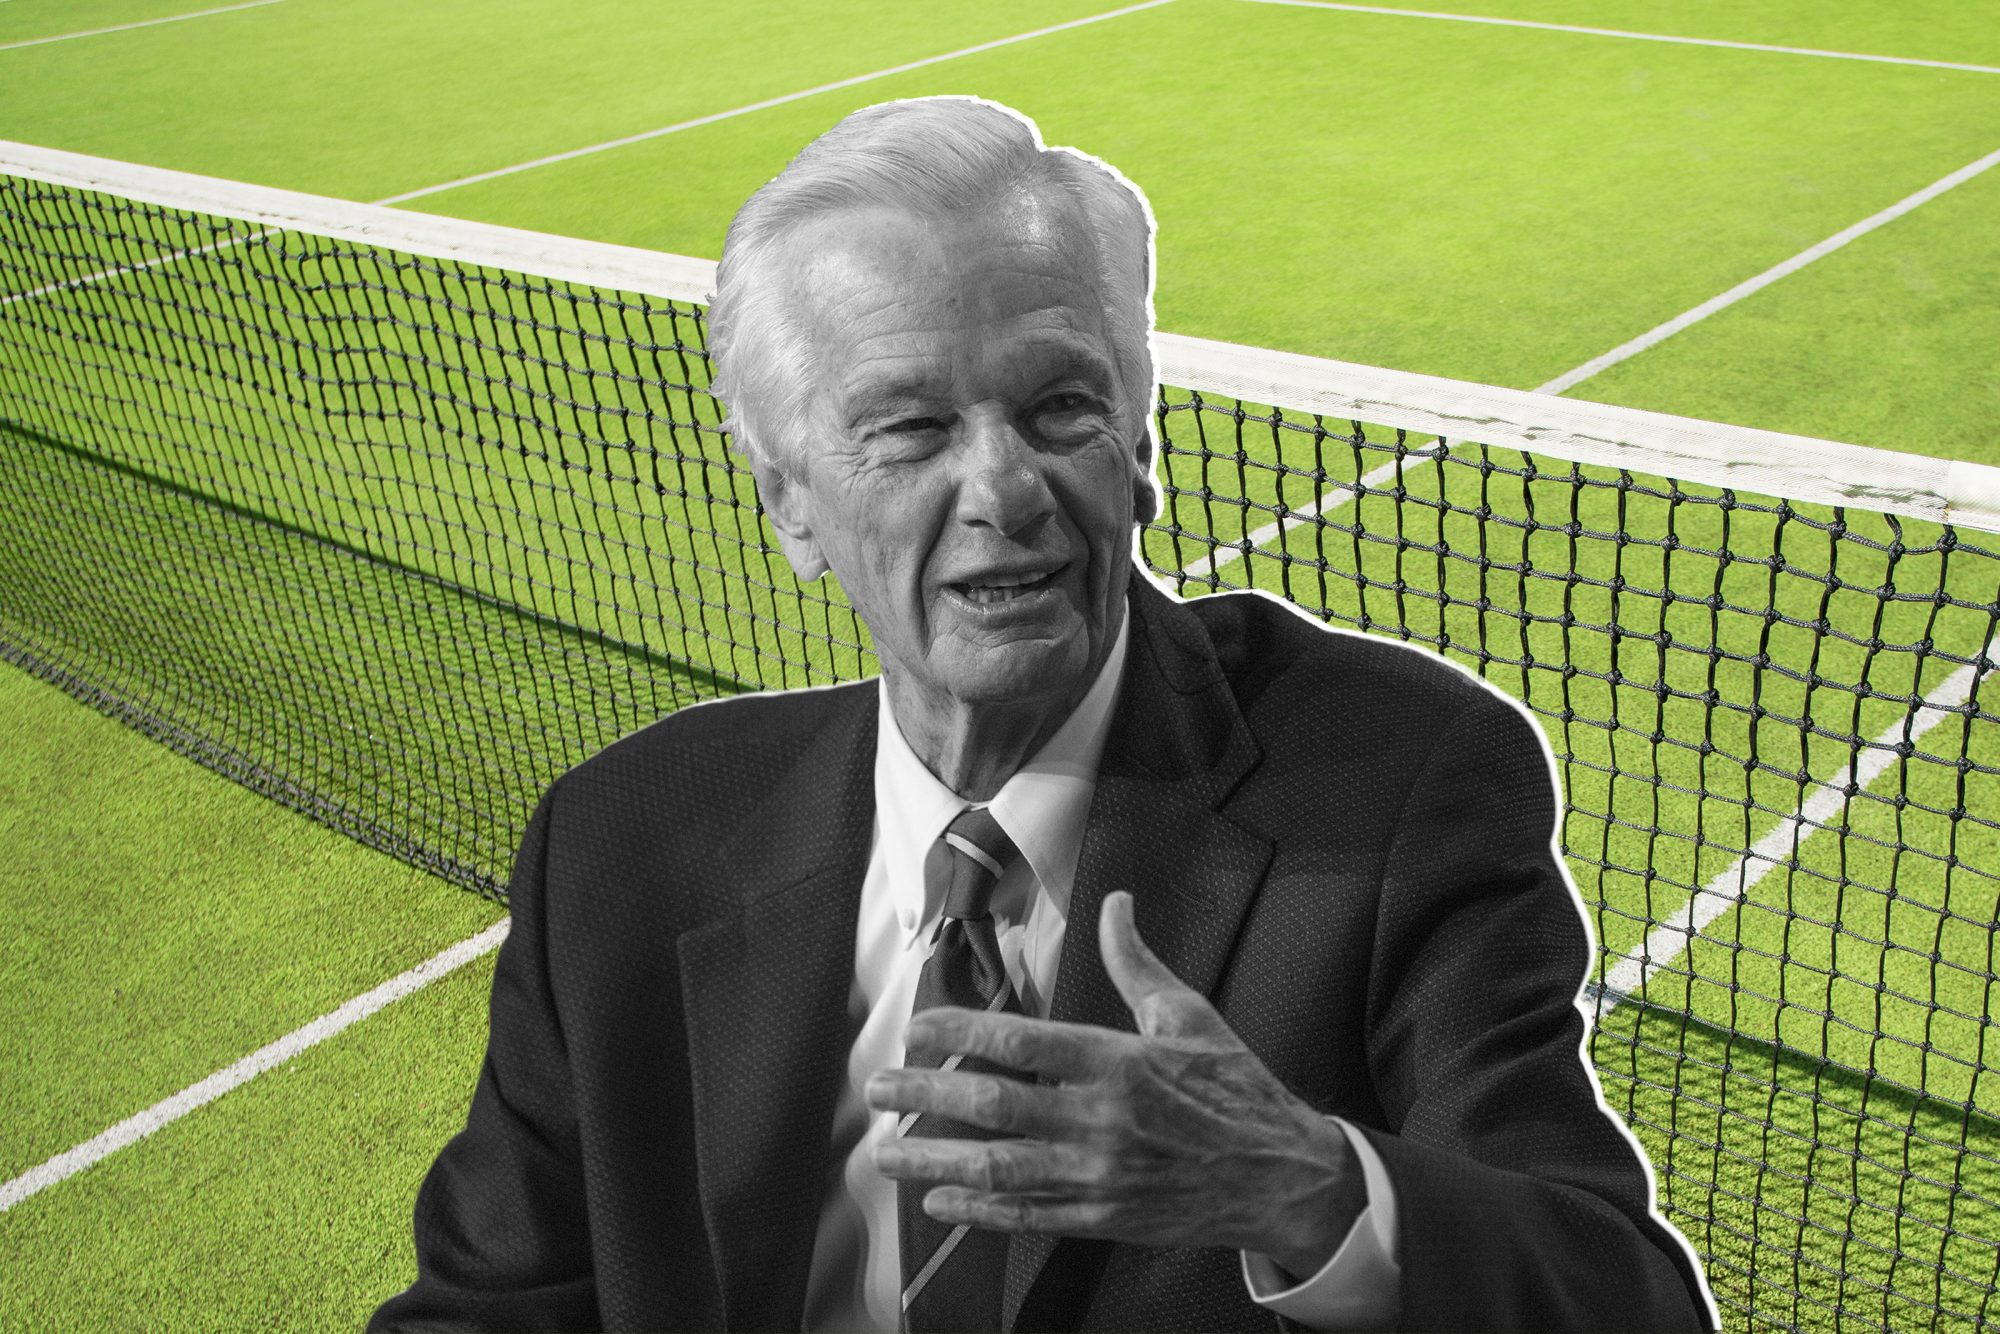 Jorge Paulo Lemann, co-founder of 3G Capital Inc.